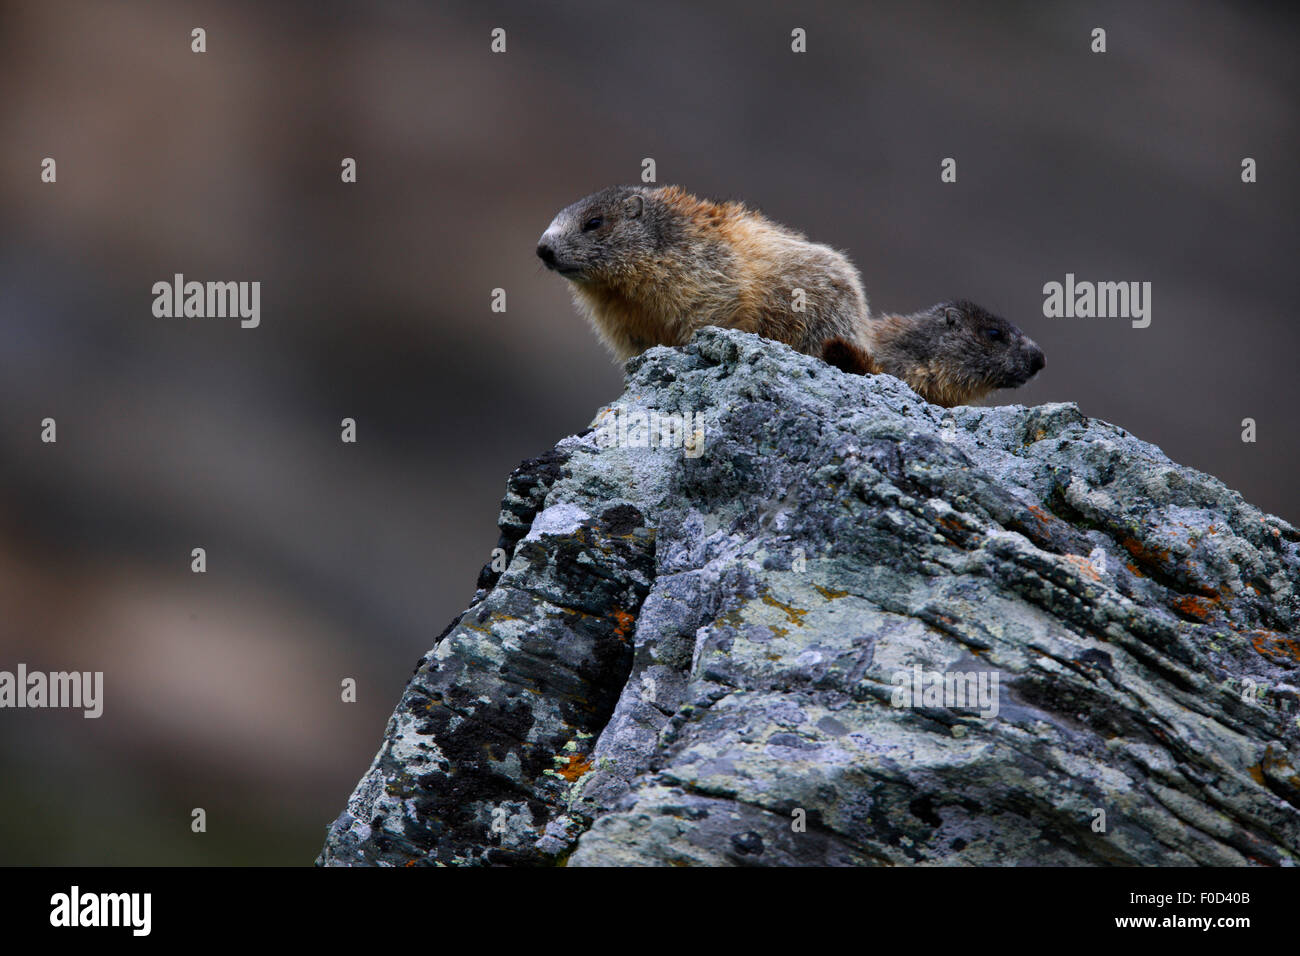 Two Alpine marmots (Marmota marmota) sitting on a rock, Hohe Tauern National Park, Austria, July 2008 - Stock Image